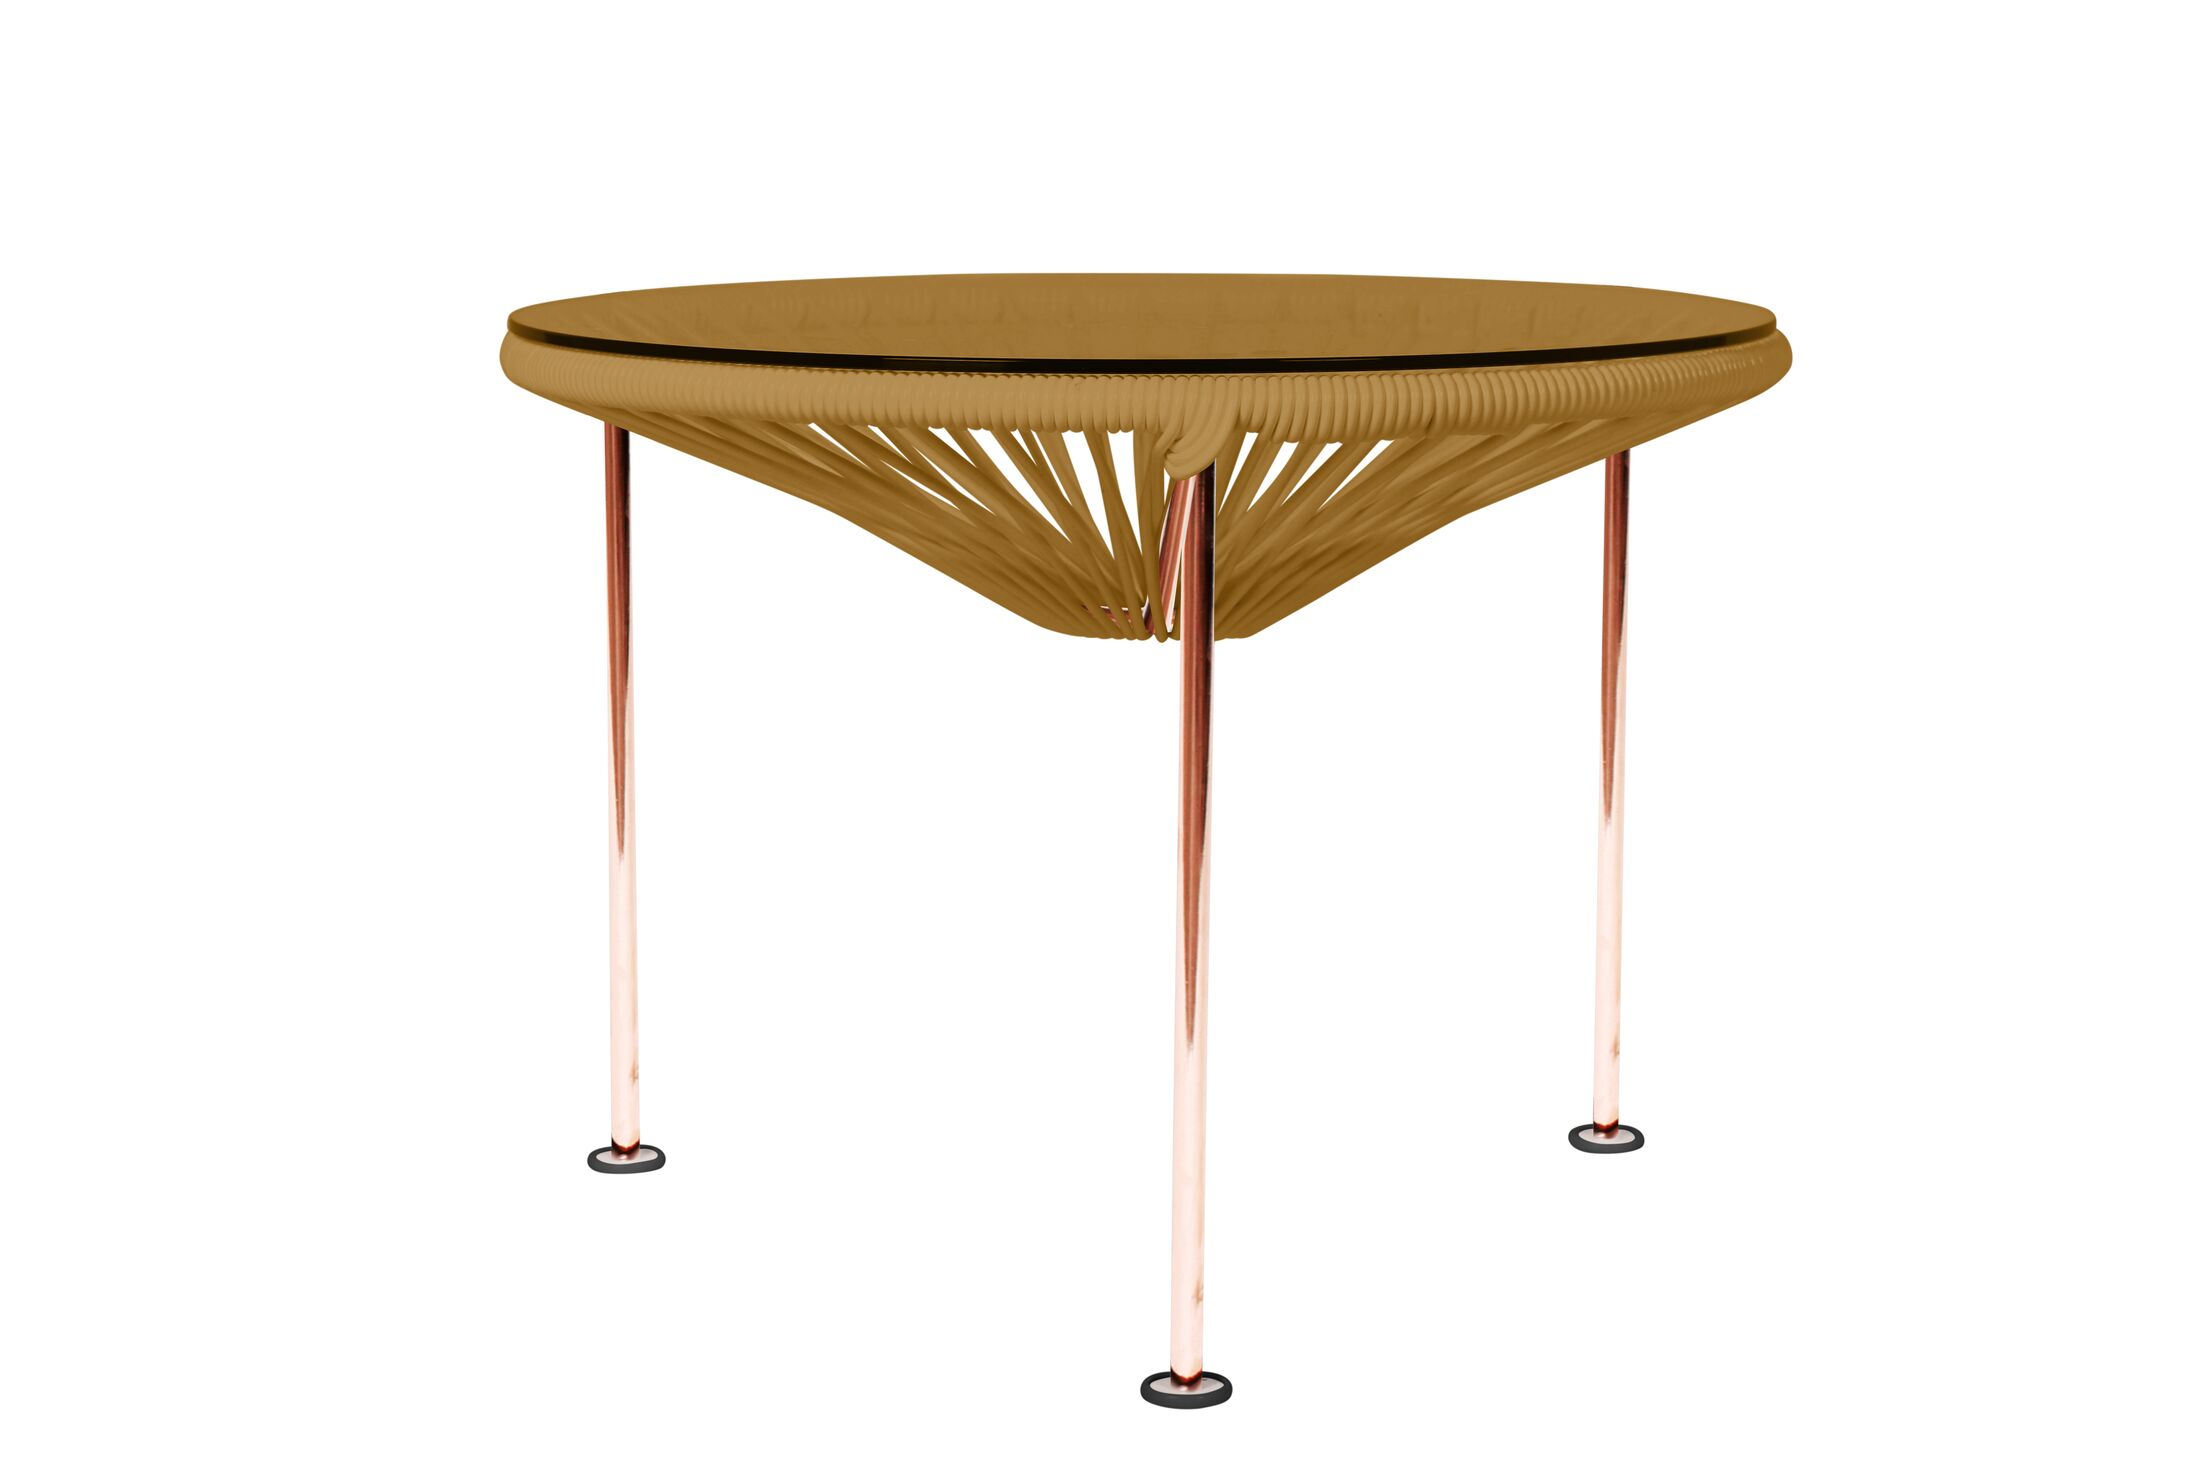 Cobby End Table Table Base Color: Copper, Table Top Color: Gold